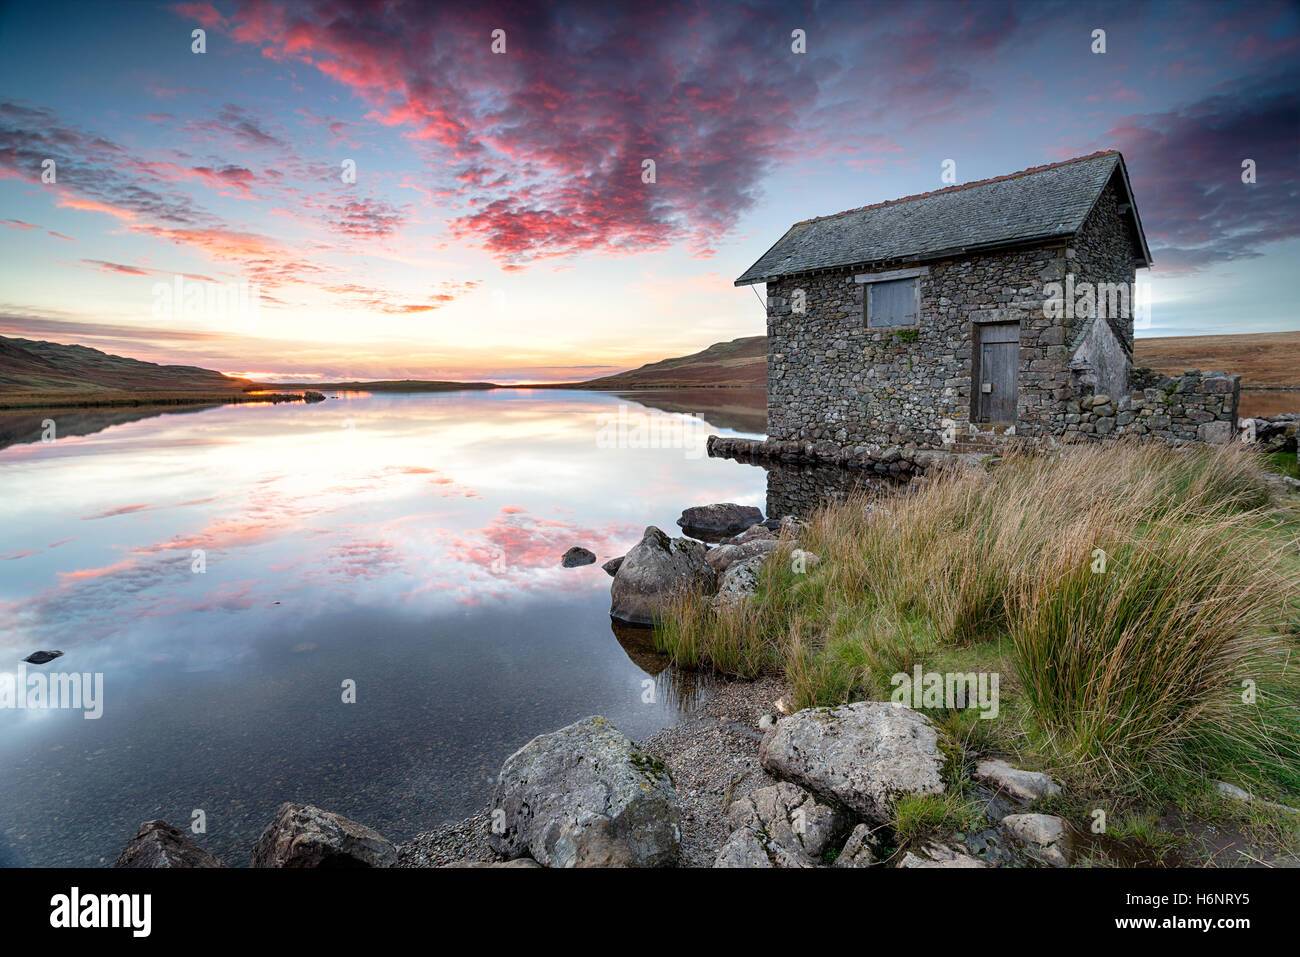 Sunset over an old stone boathouse on the shores of Devoke Water, a remote lake on Birker Fell in the Lake District - Stock Image